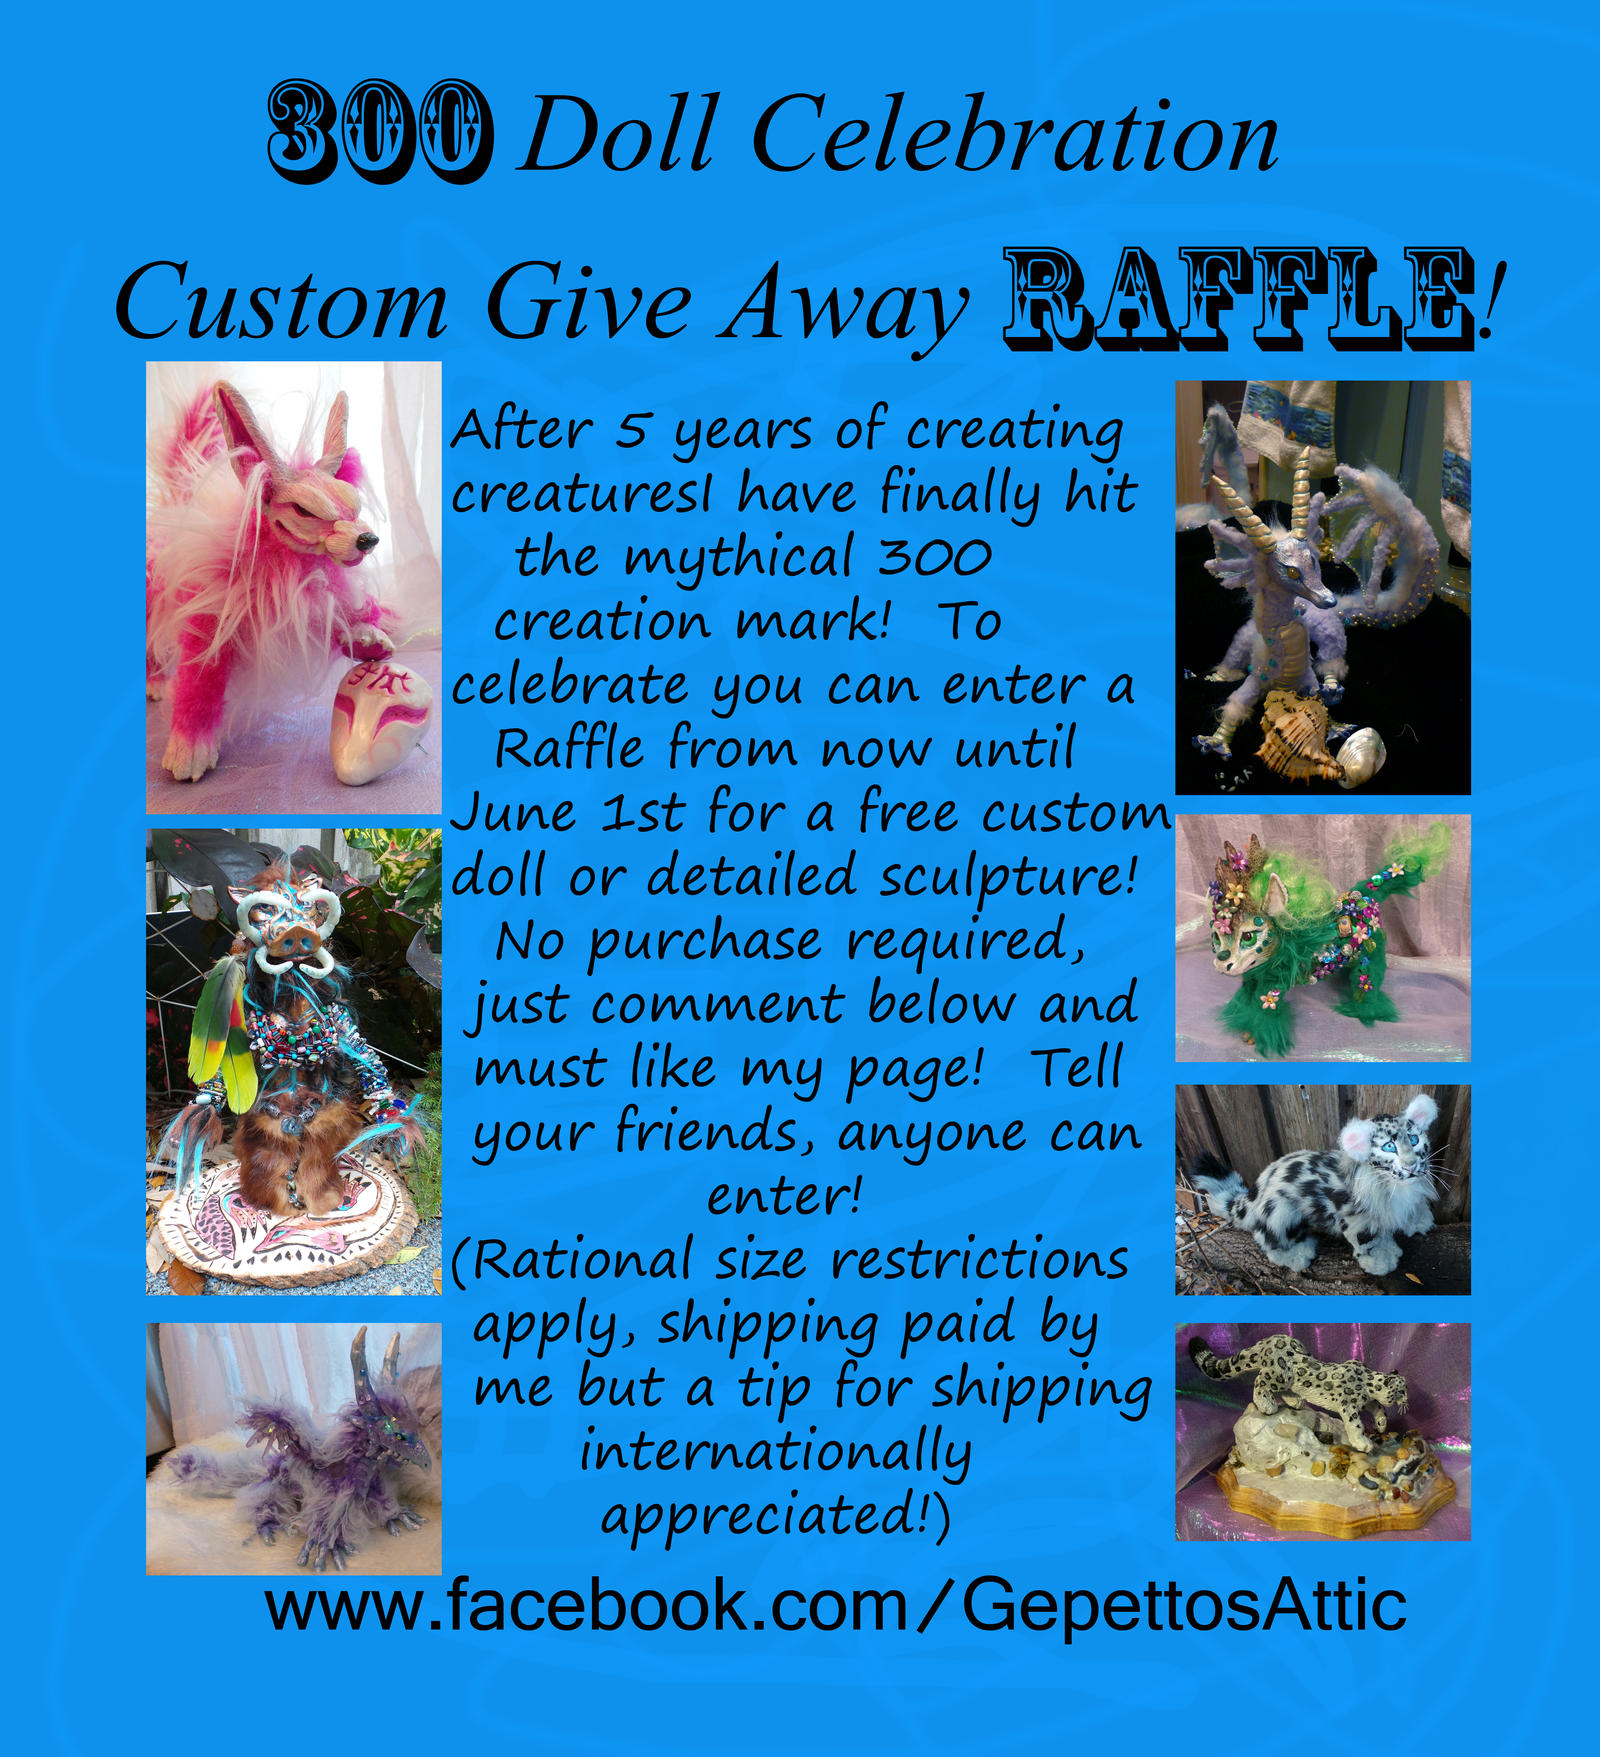 300 Doll Raffle For FREE DOLL by Eviecats